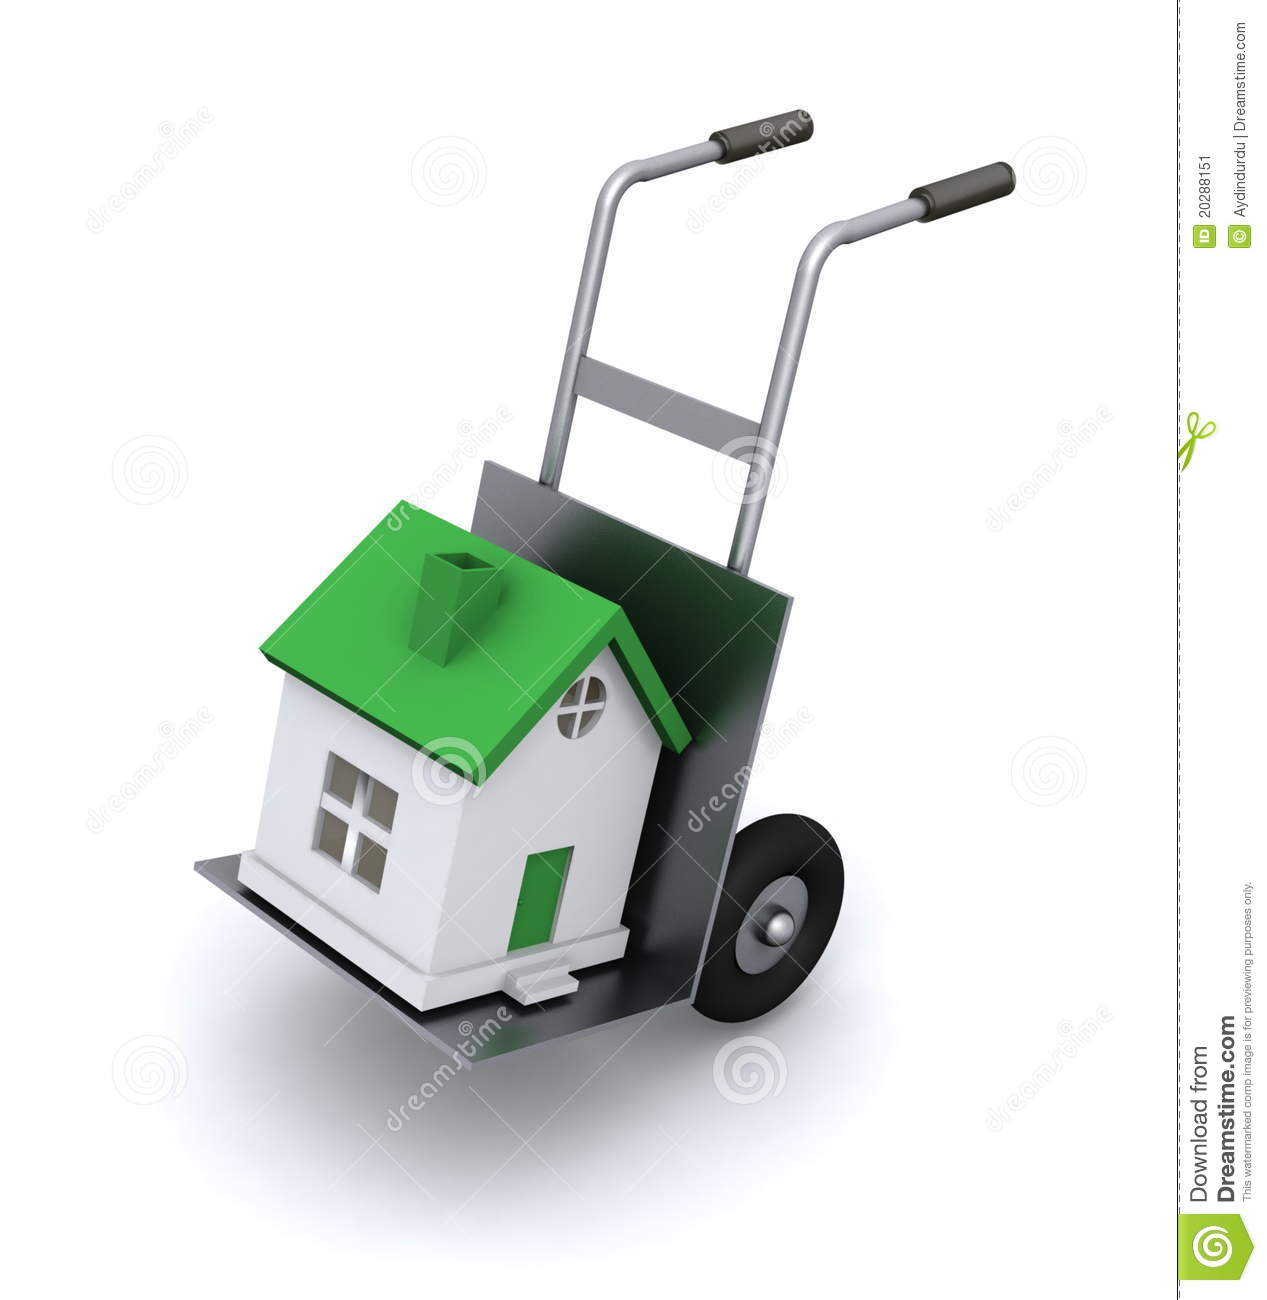 Moving houses stock image image 20288151 When is the best time to move house